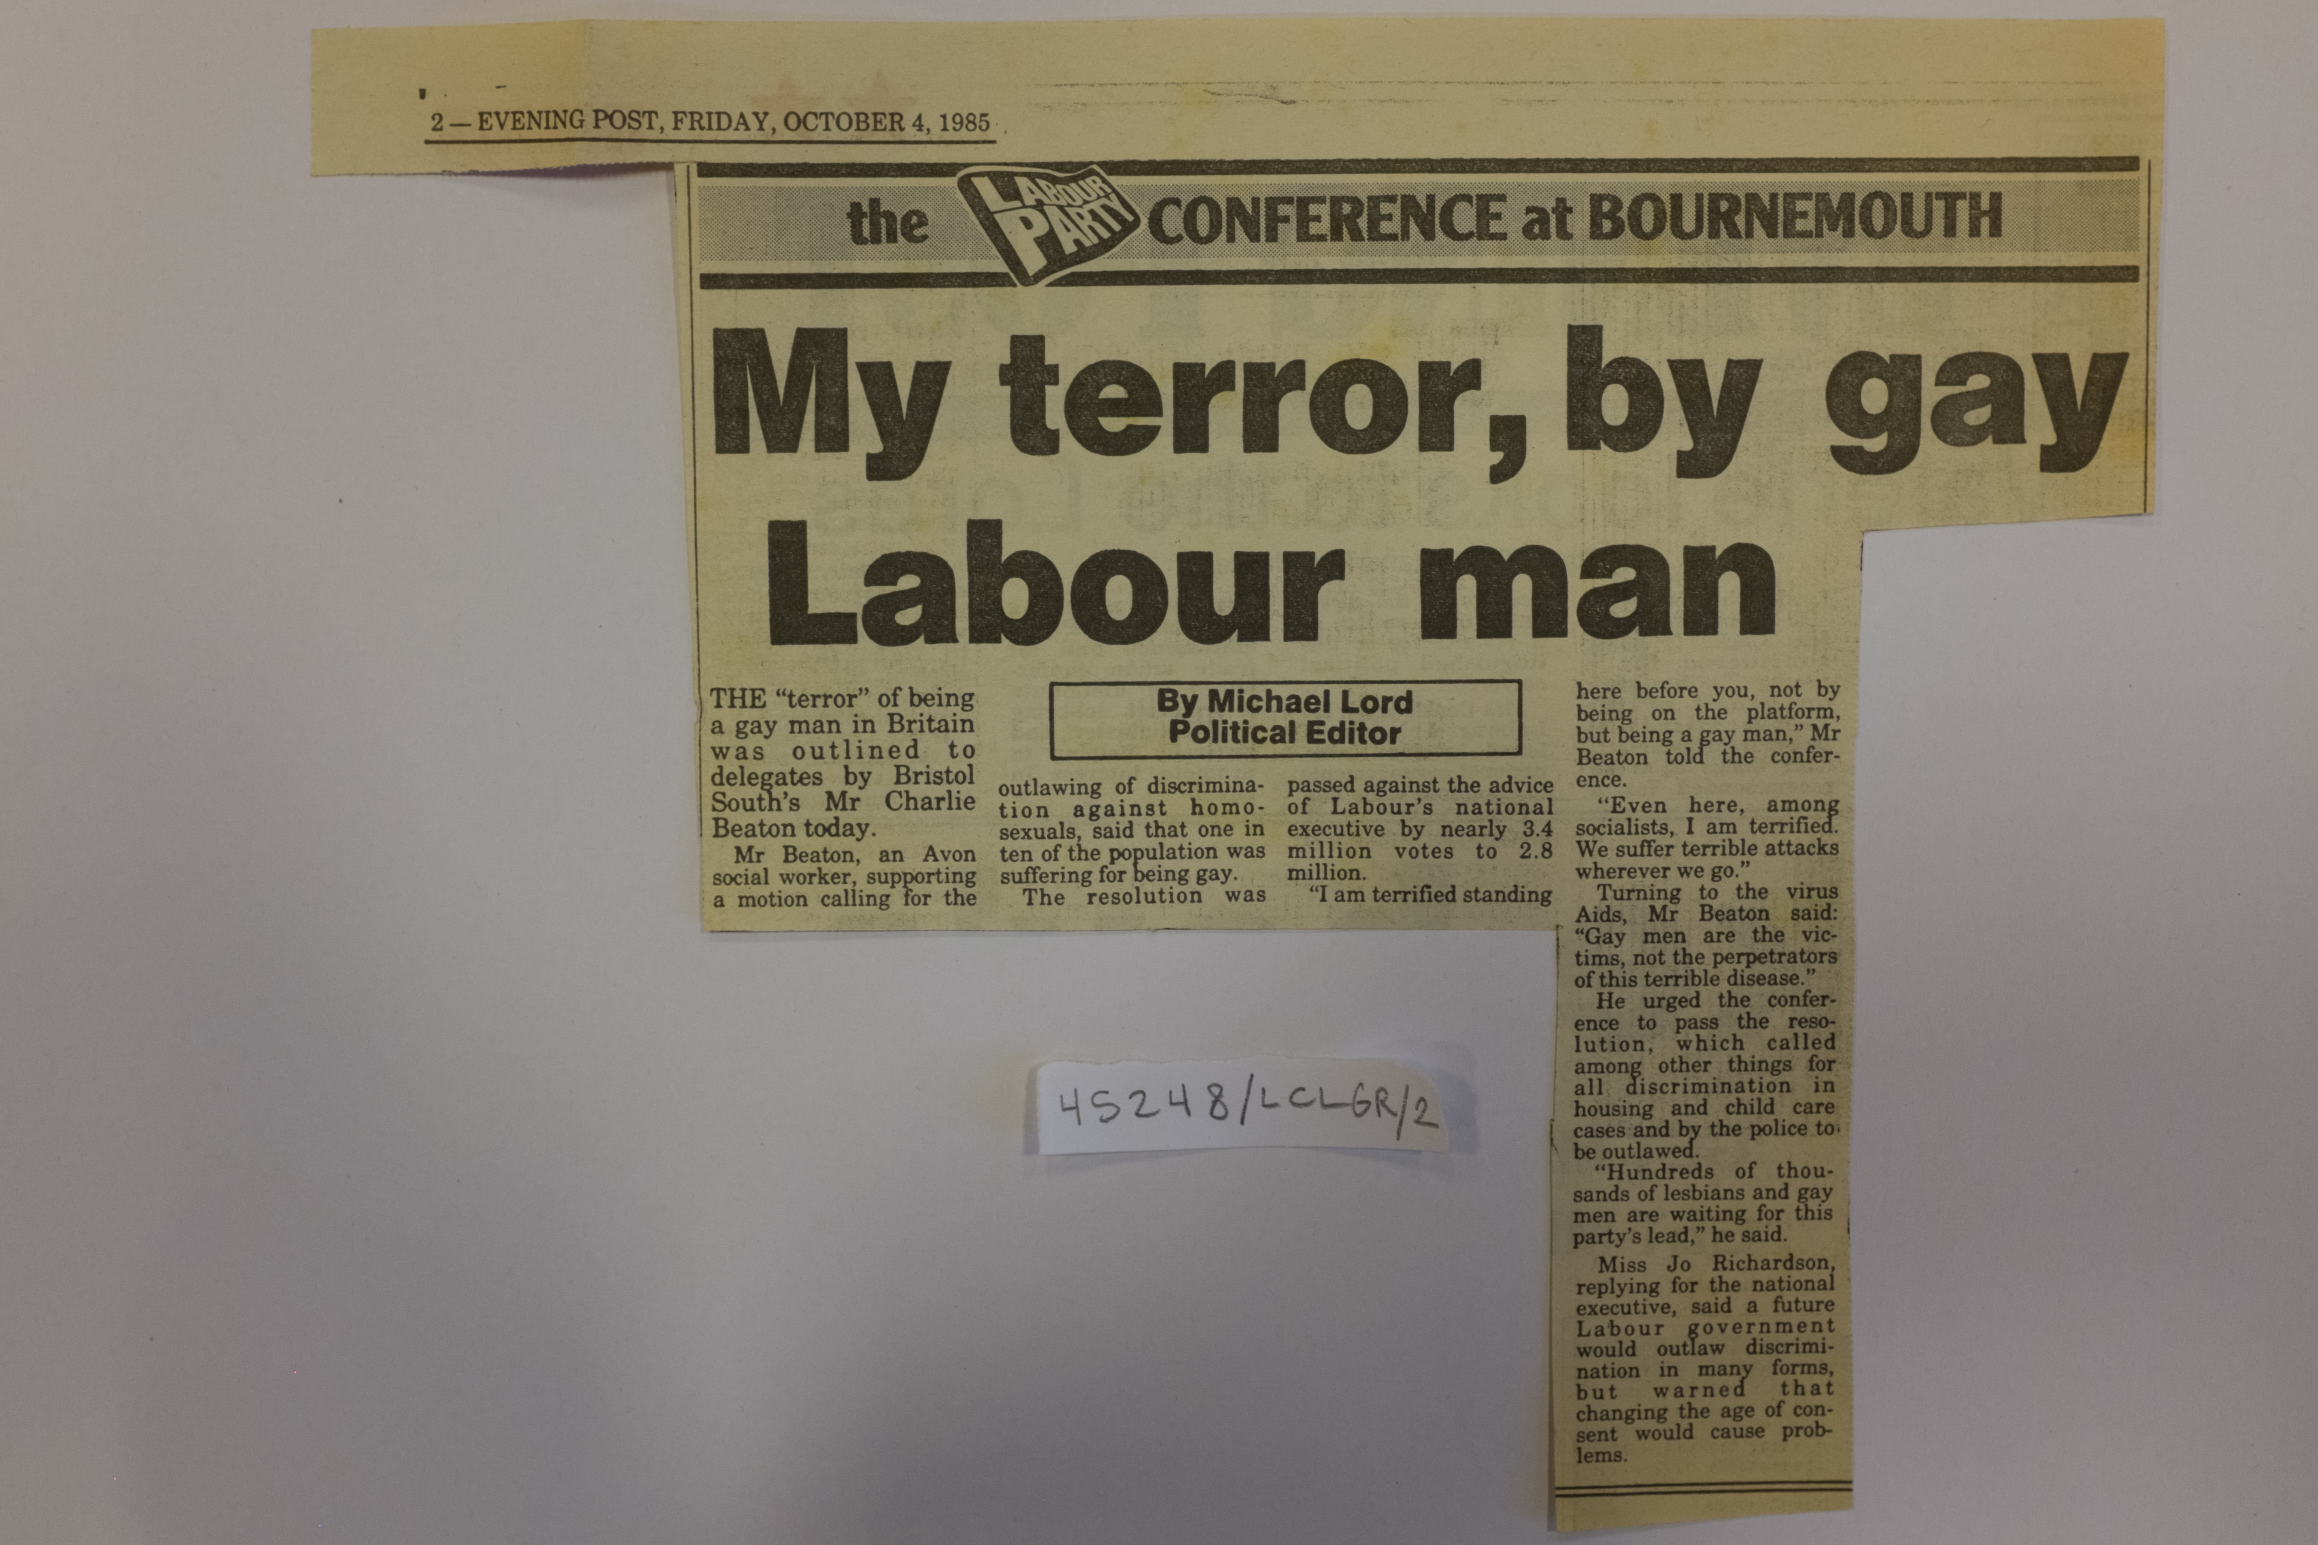 A newspaper article with heading My terror, by gay Labour man